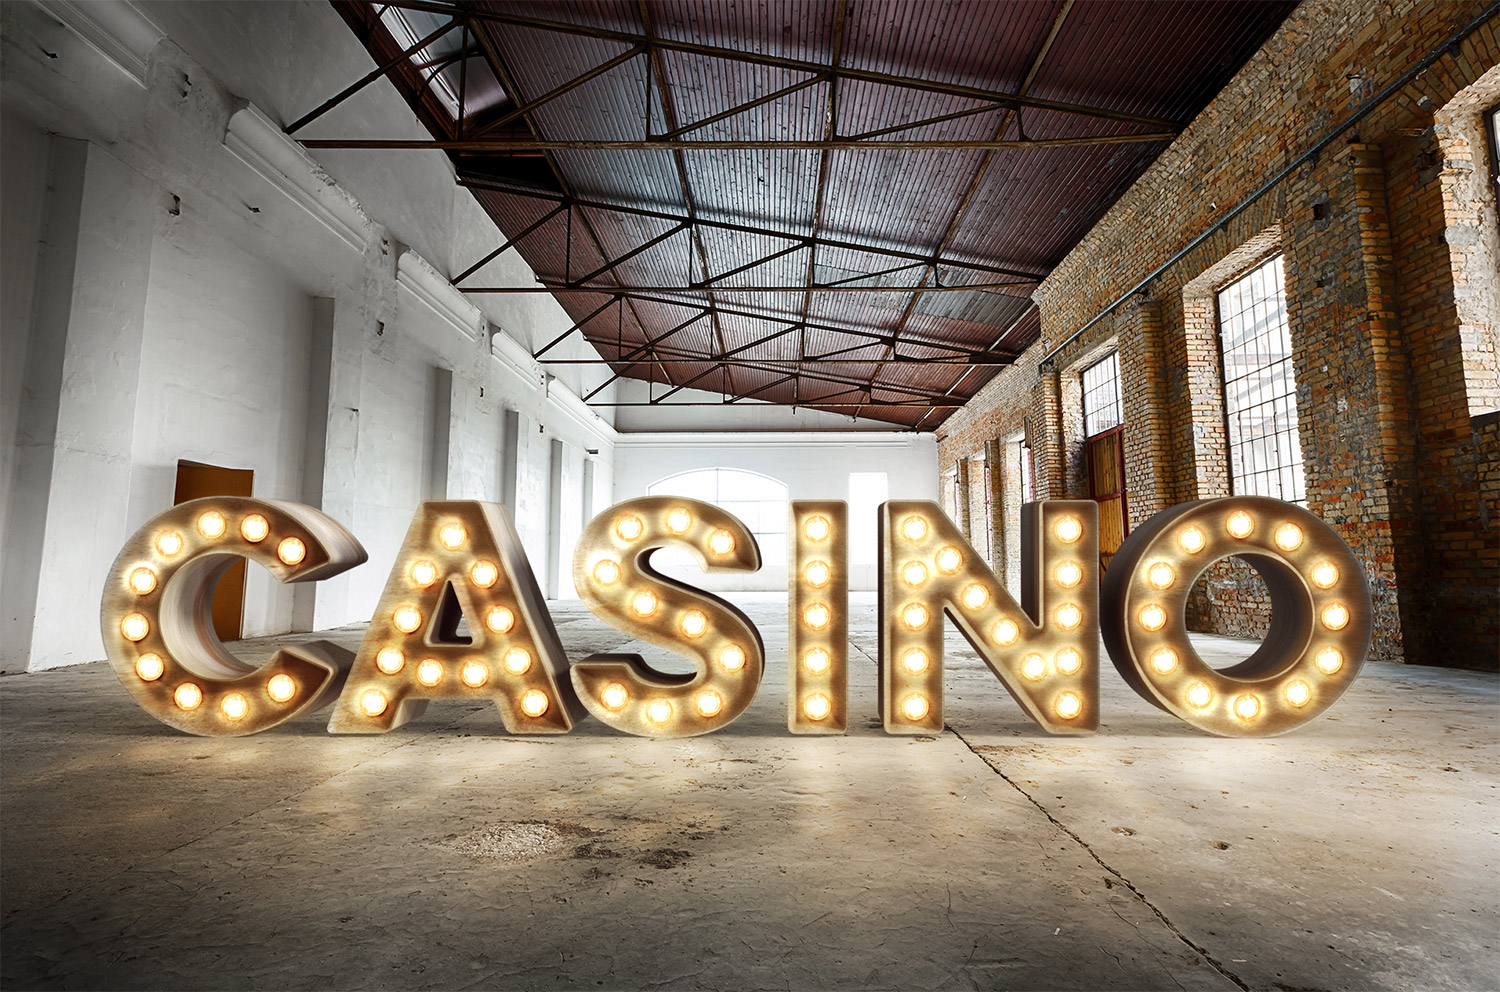 realistic 3d casino style bulb sign